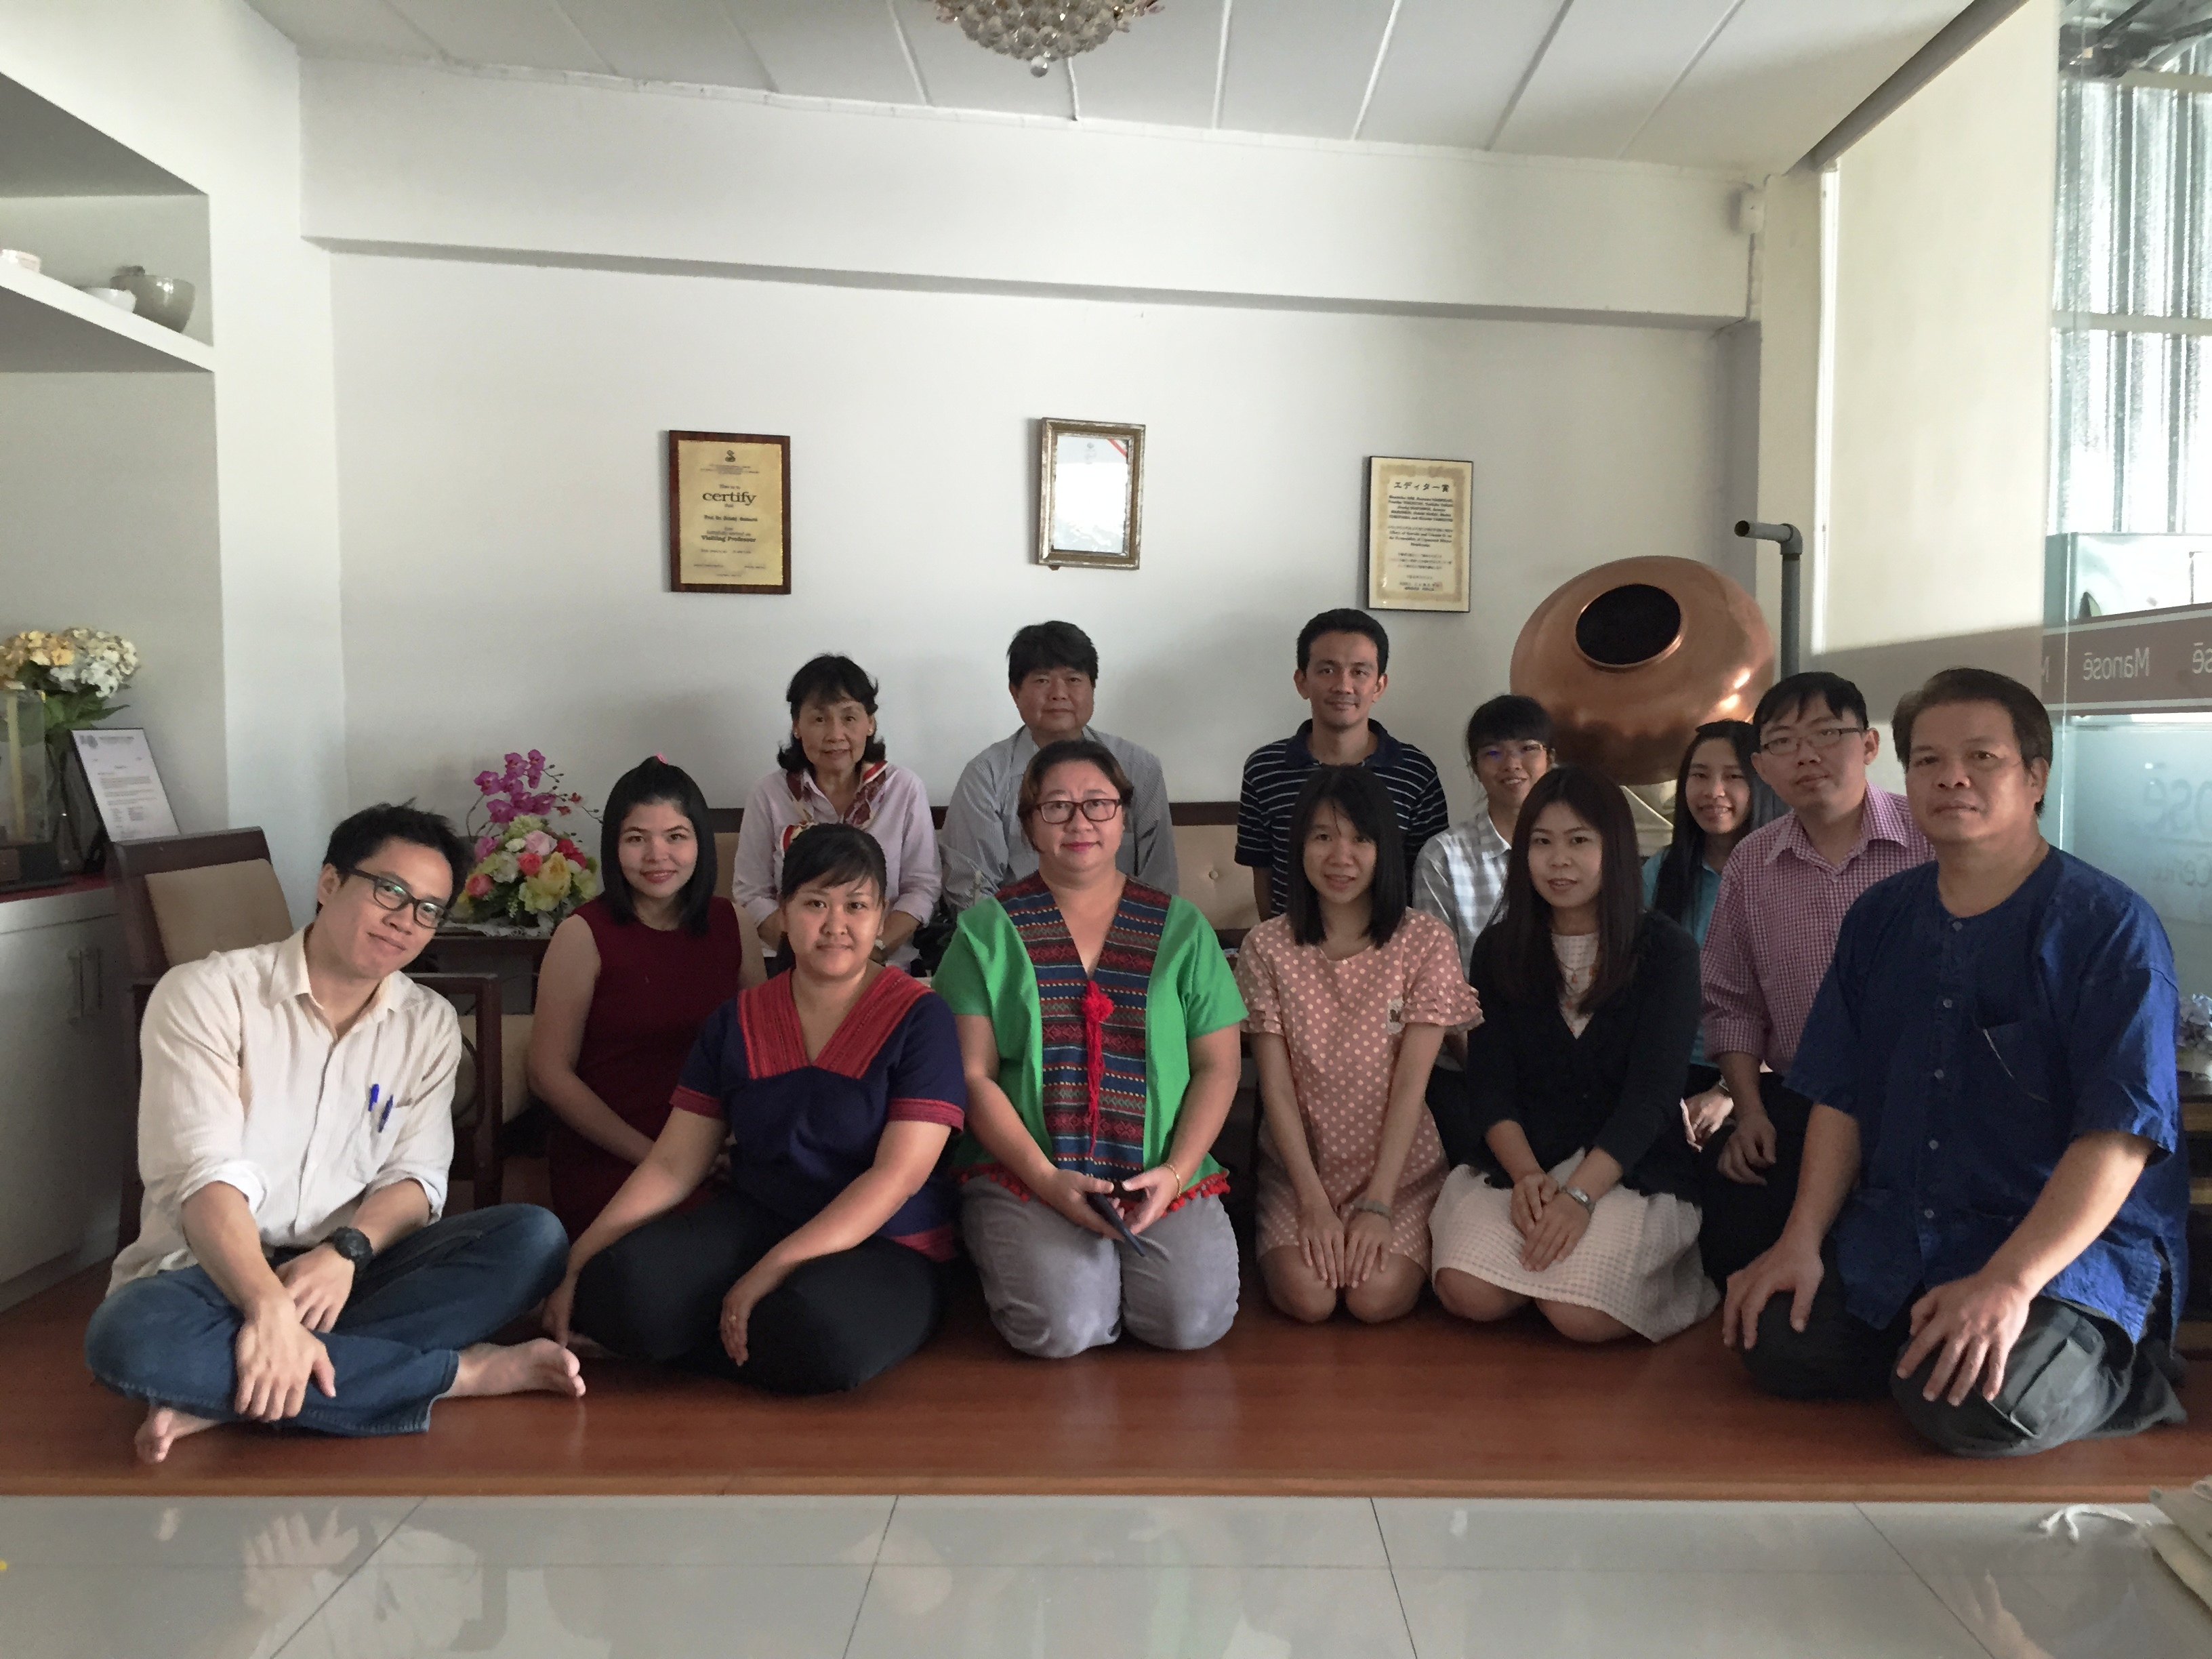 Staffs, researchers, PhD students and student alumni and Mrs. Anchisa Rungroangsri have come to pay respect to the board of Manose Health and Beauty Research Center on the occasion of Thai New year (Songkran Festival)